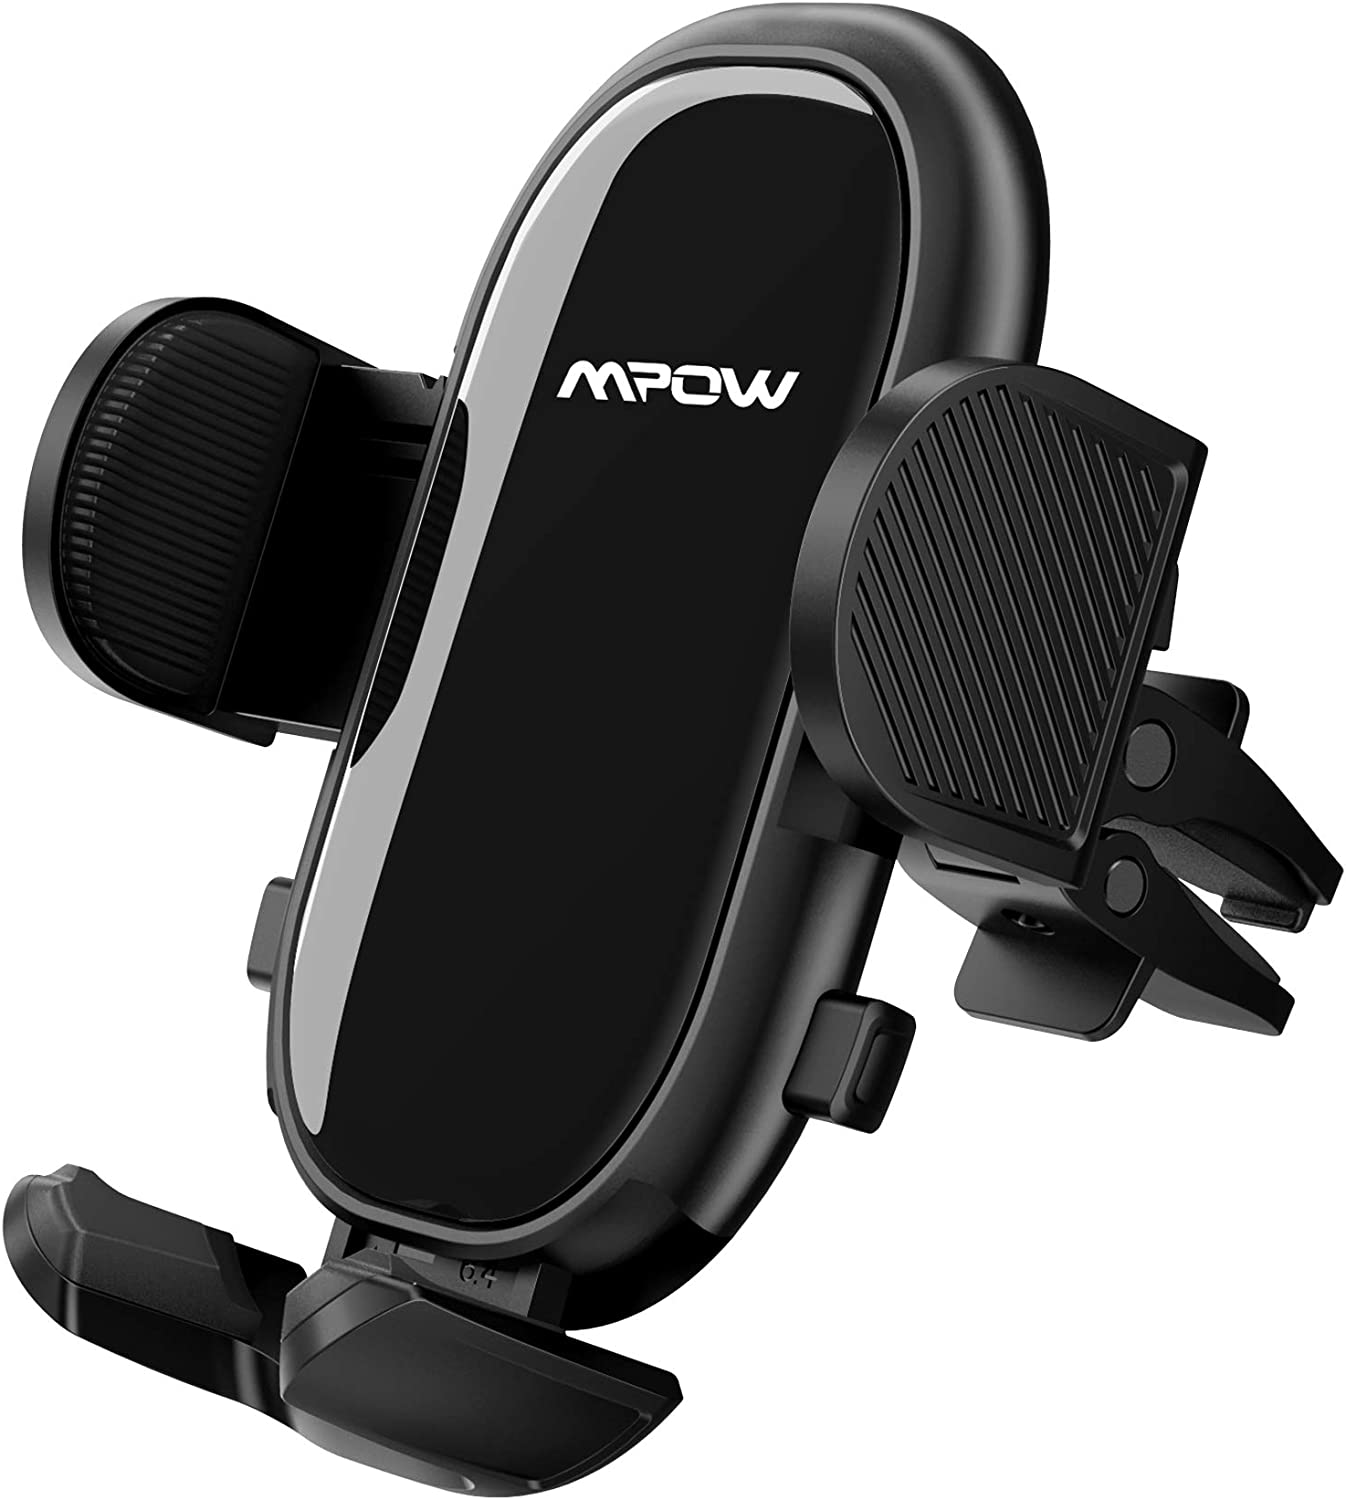 Mpow Car mobile phone mount for Ford Expedition